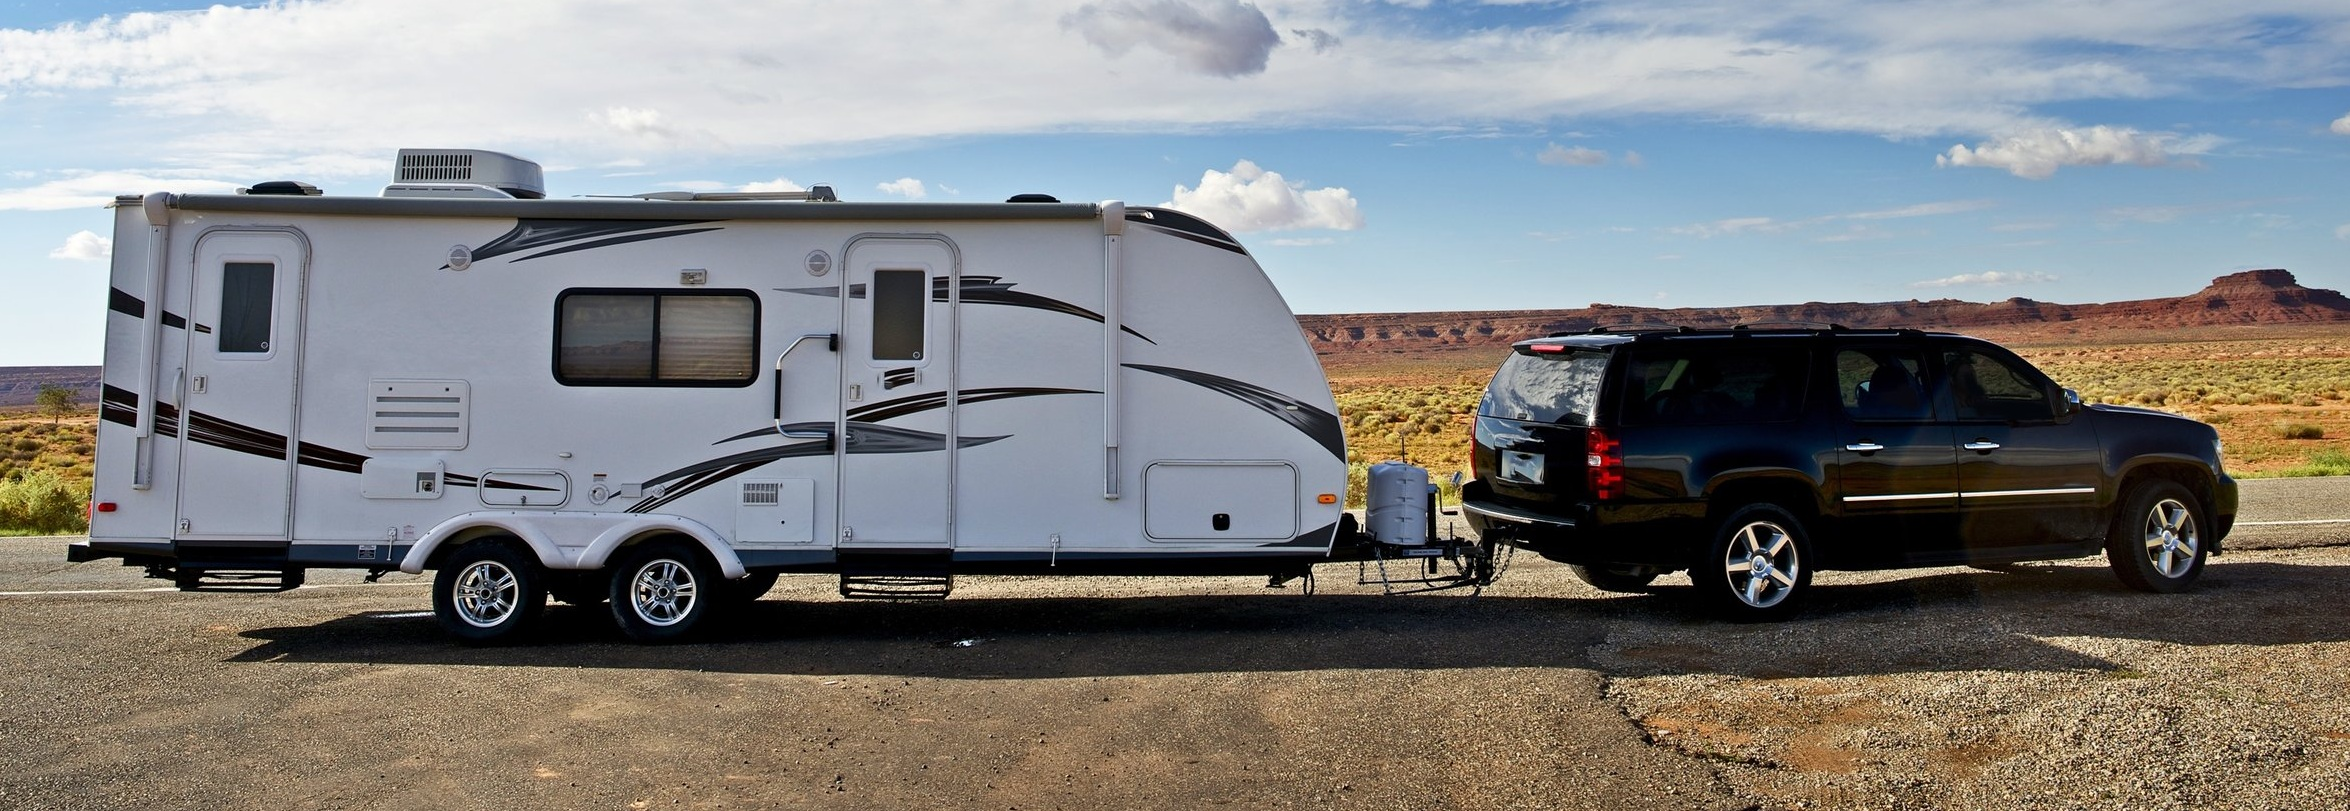 If you have or can borrow an RV, consider moving in short term or even better, plan a vacation during the messiest parts of the remodel!